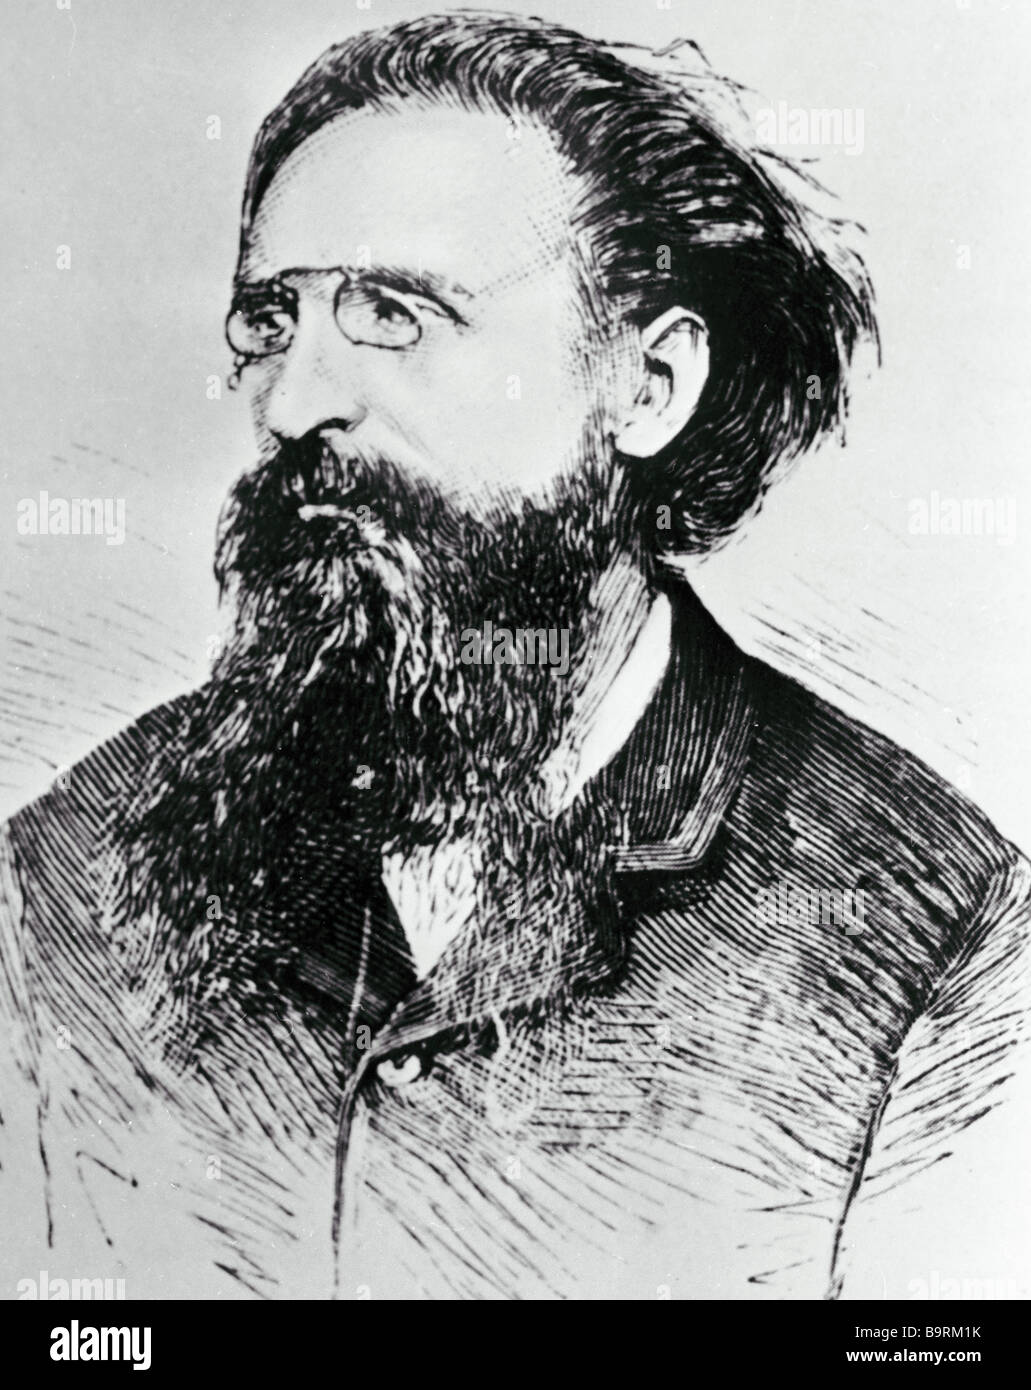 Reproduction of the engraved image of French Socialist Jules Guesde - Stock Image